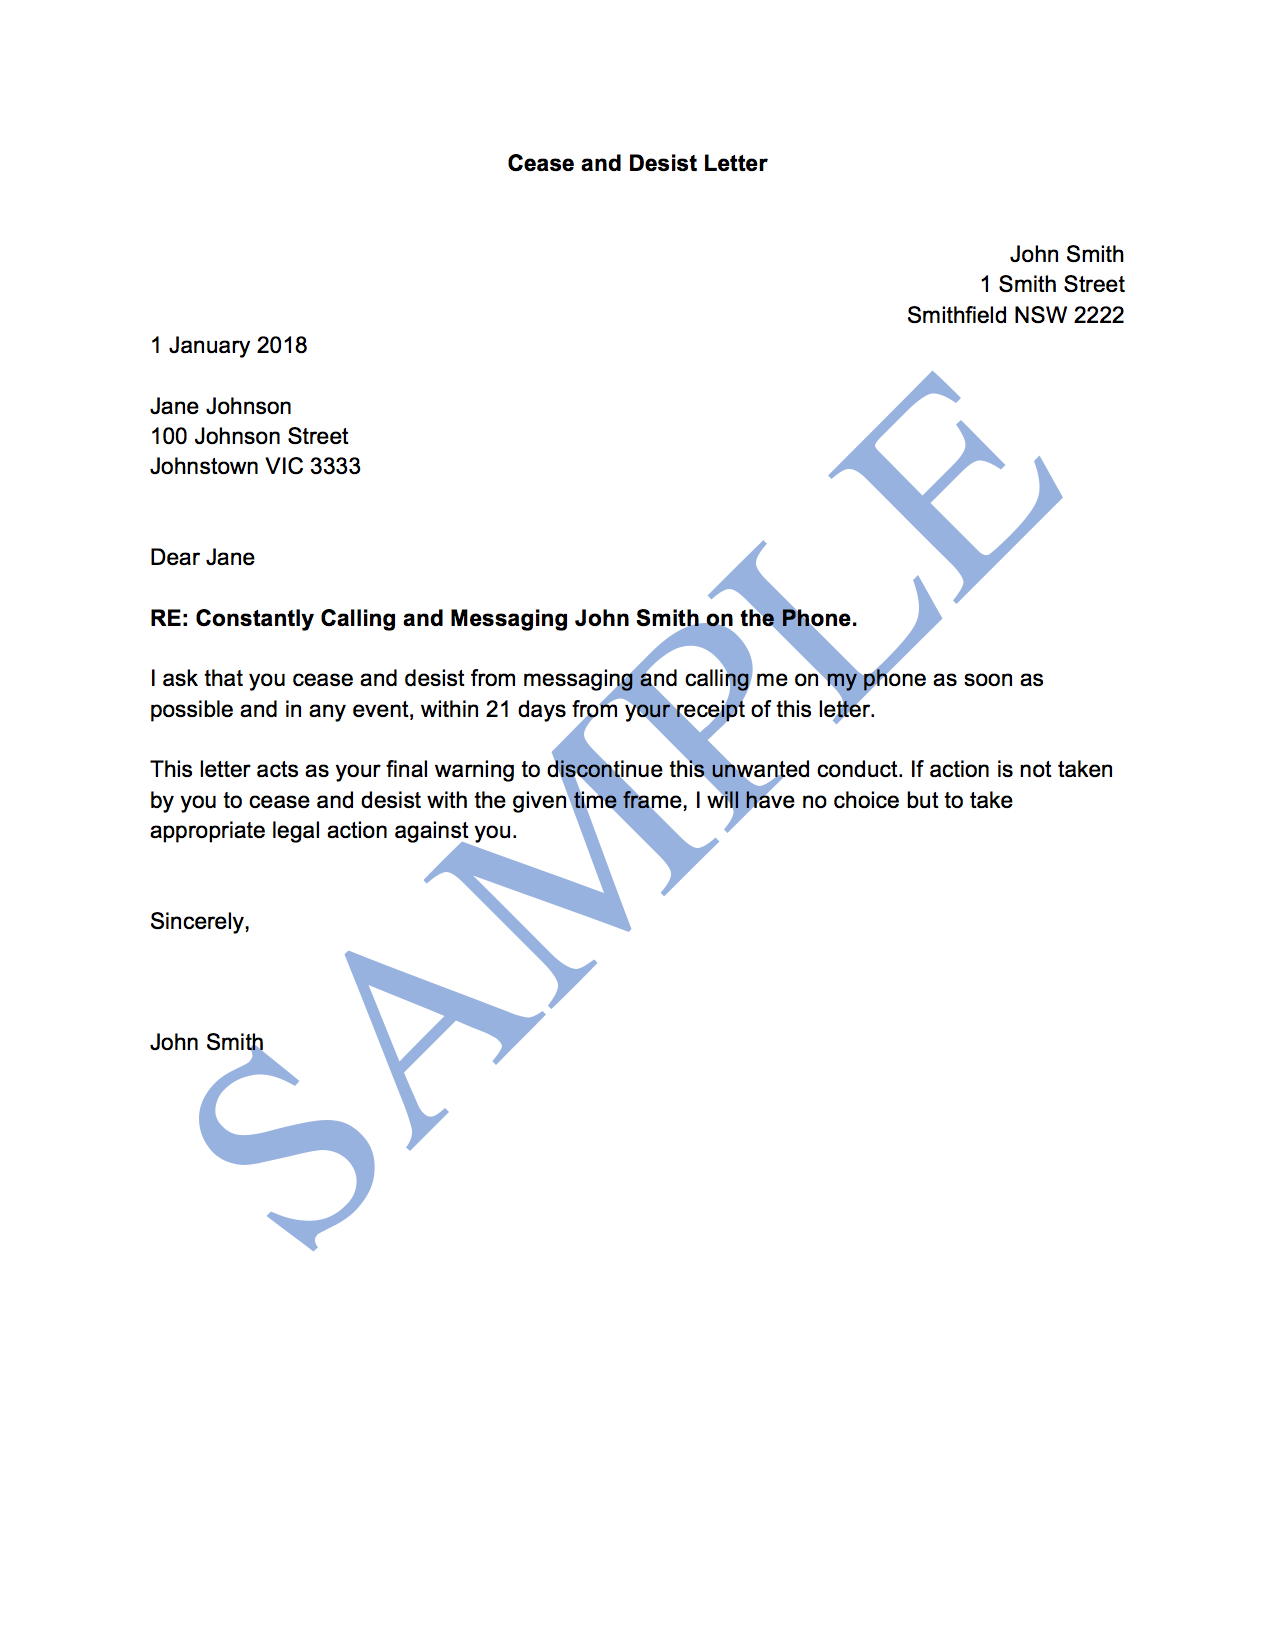 Trademark Cease And Desist Letter Template from lp-public-images.s3-ap-southeast-2.amazonaws.com